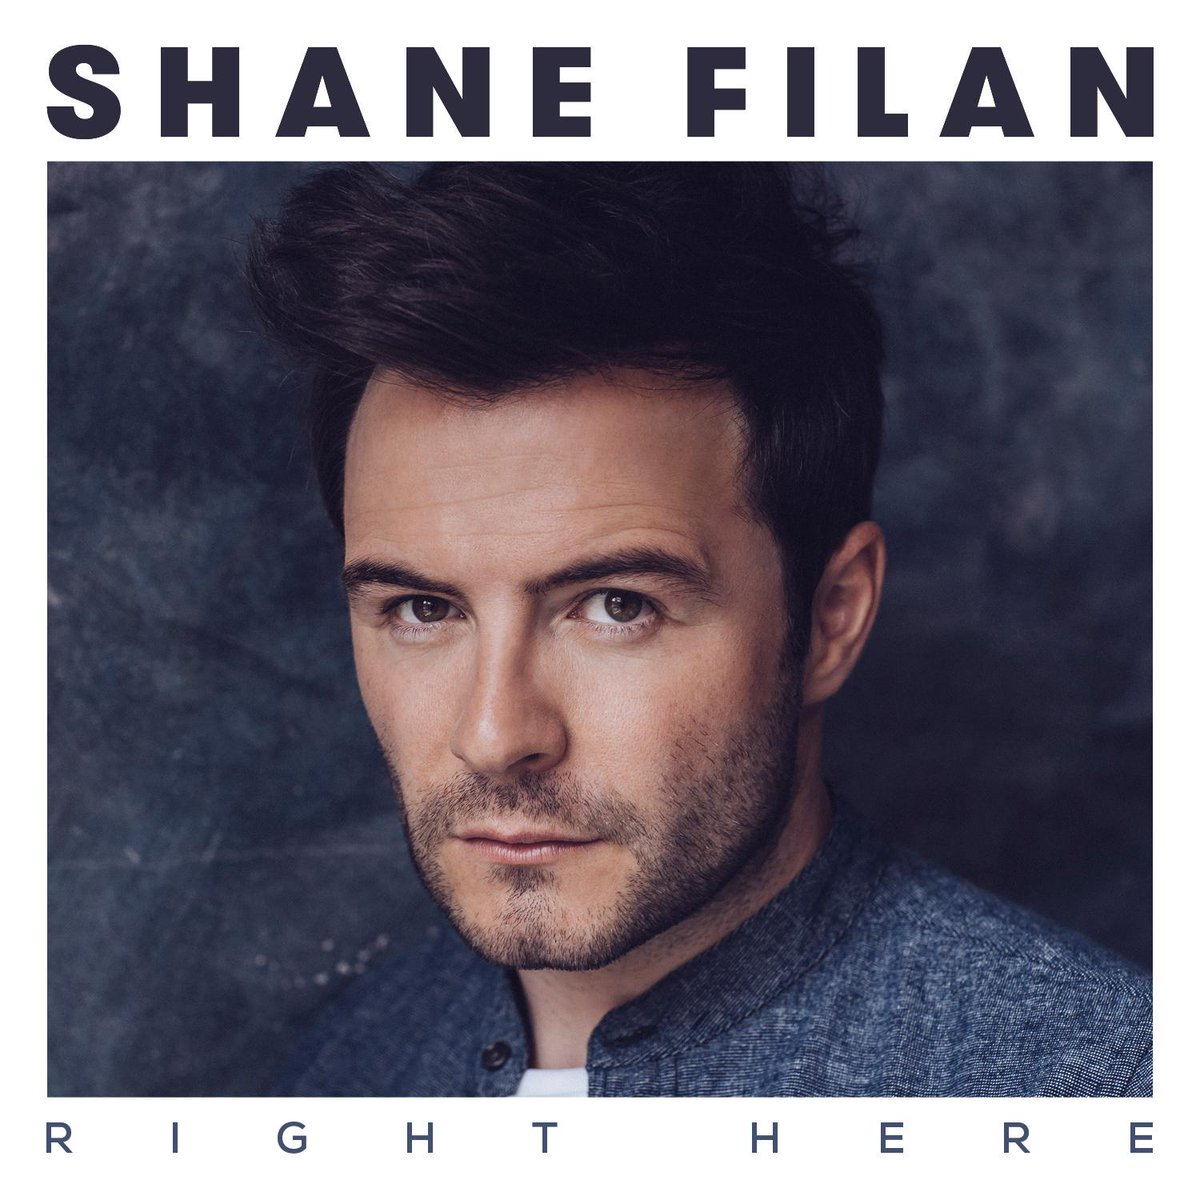 #RightHere from @ShaneFilan is out TODAY! Download from http://t.co/OdWHDnlduz #NewMusicFriday http://t.co/X9x8NORgZ7